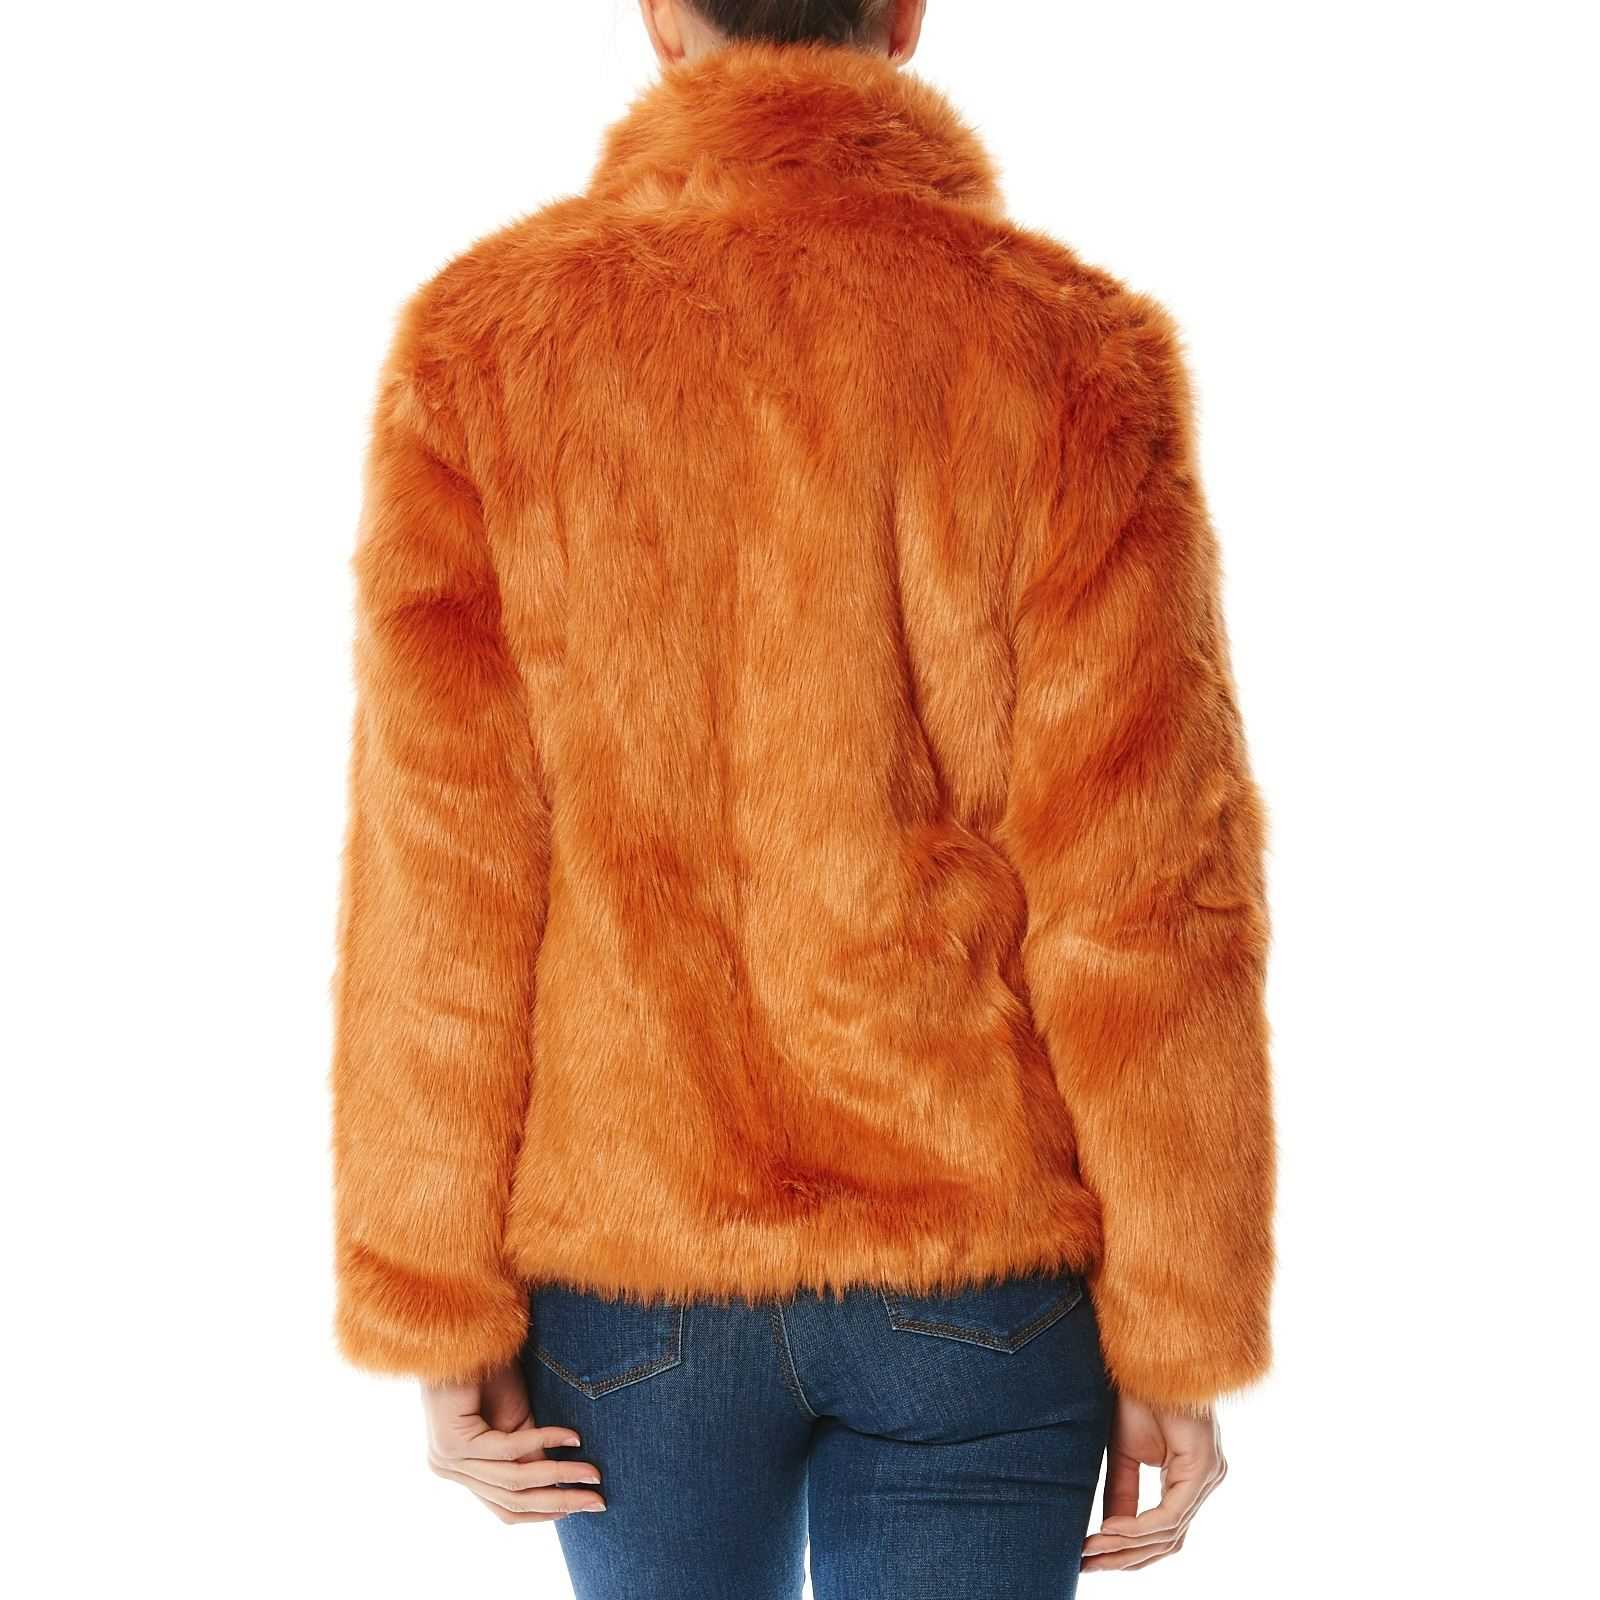 Fourrure Manteau Moda Vero Brandalley Synthétique Orange En f7wTxfA0qa 7e1128e96a83